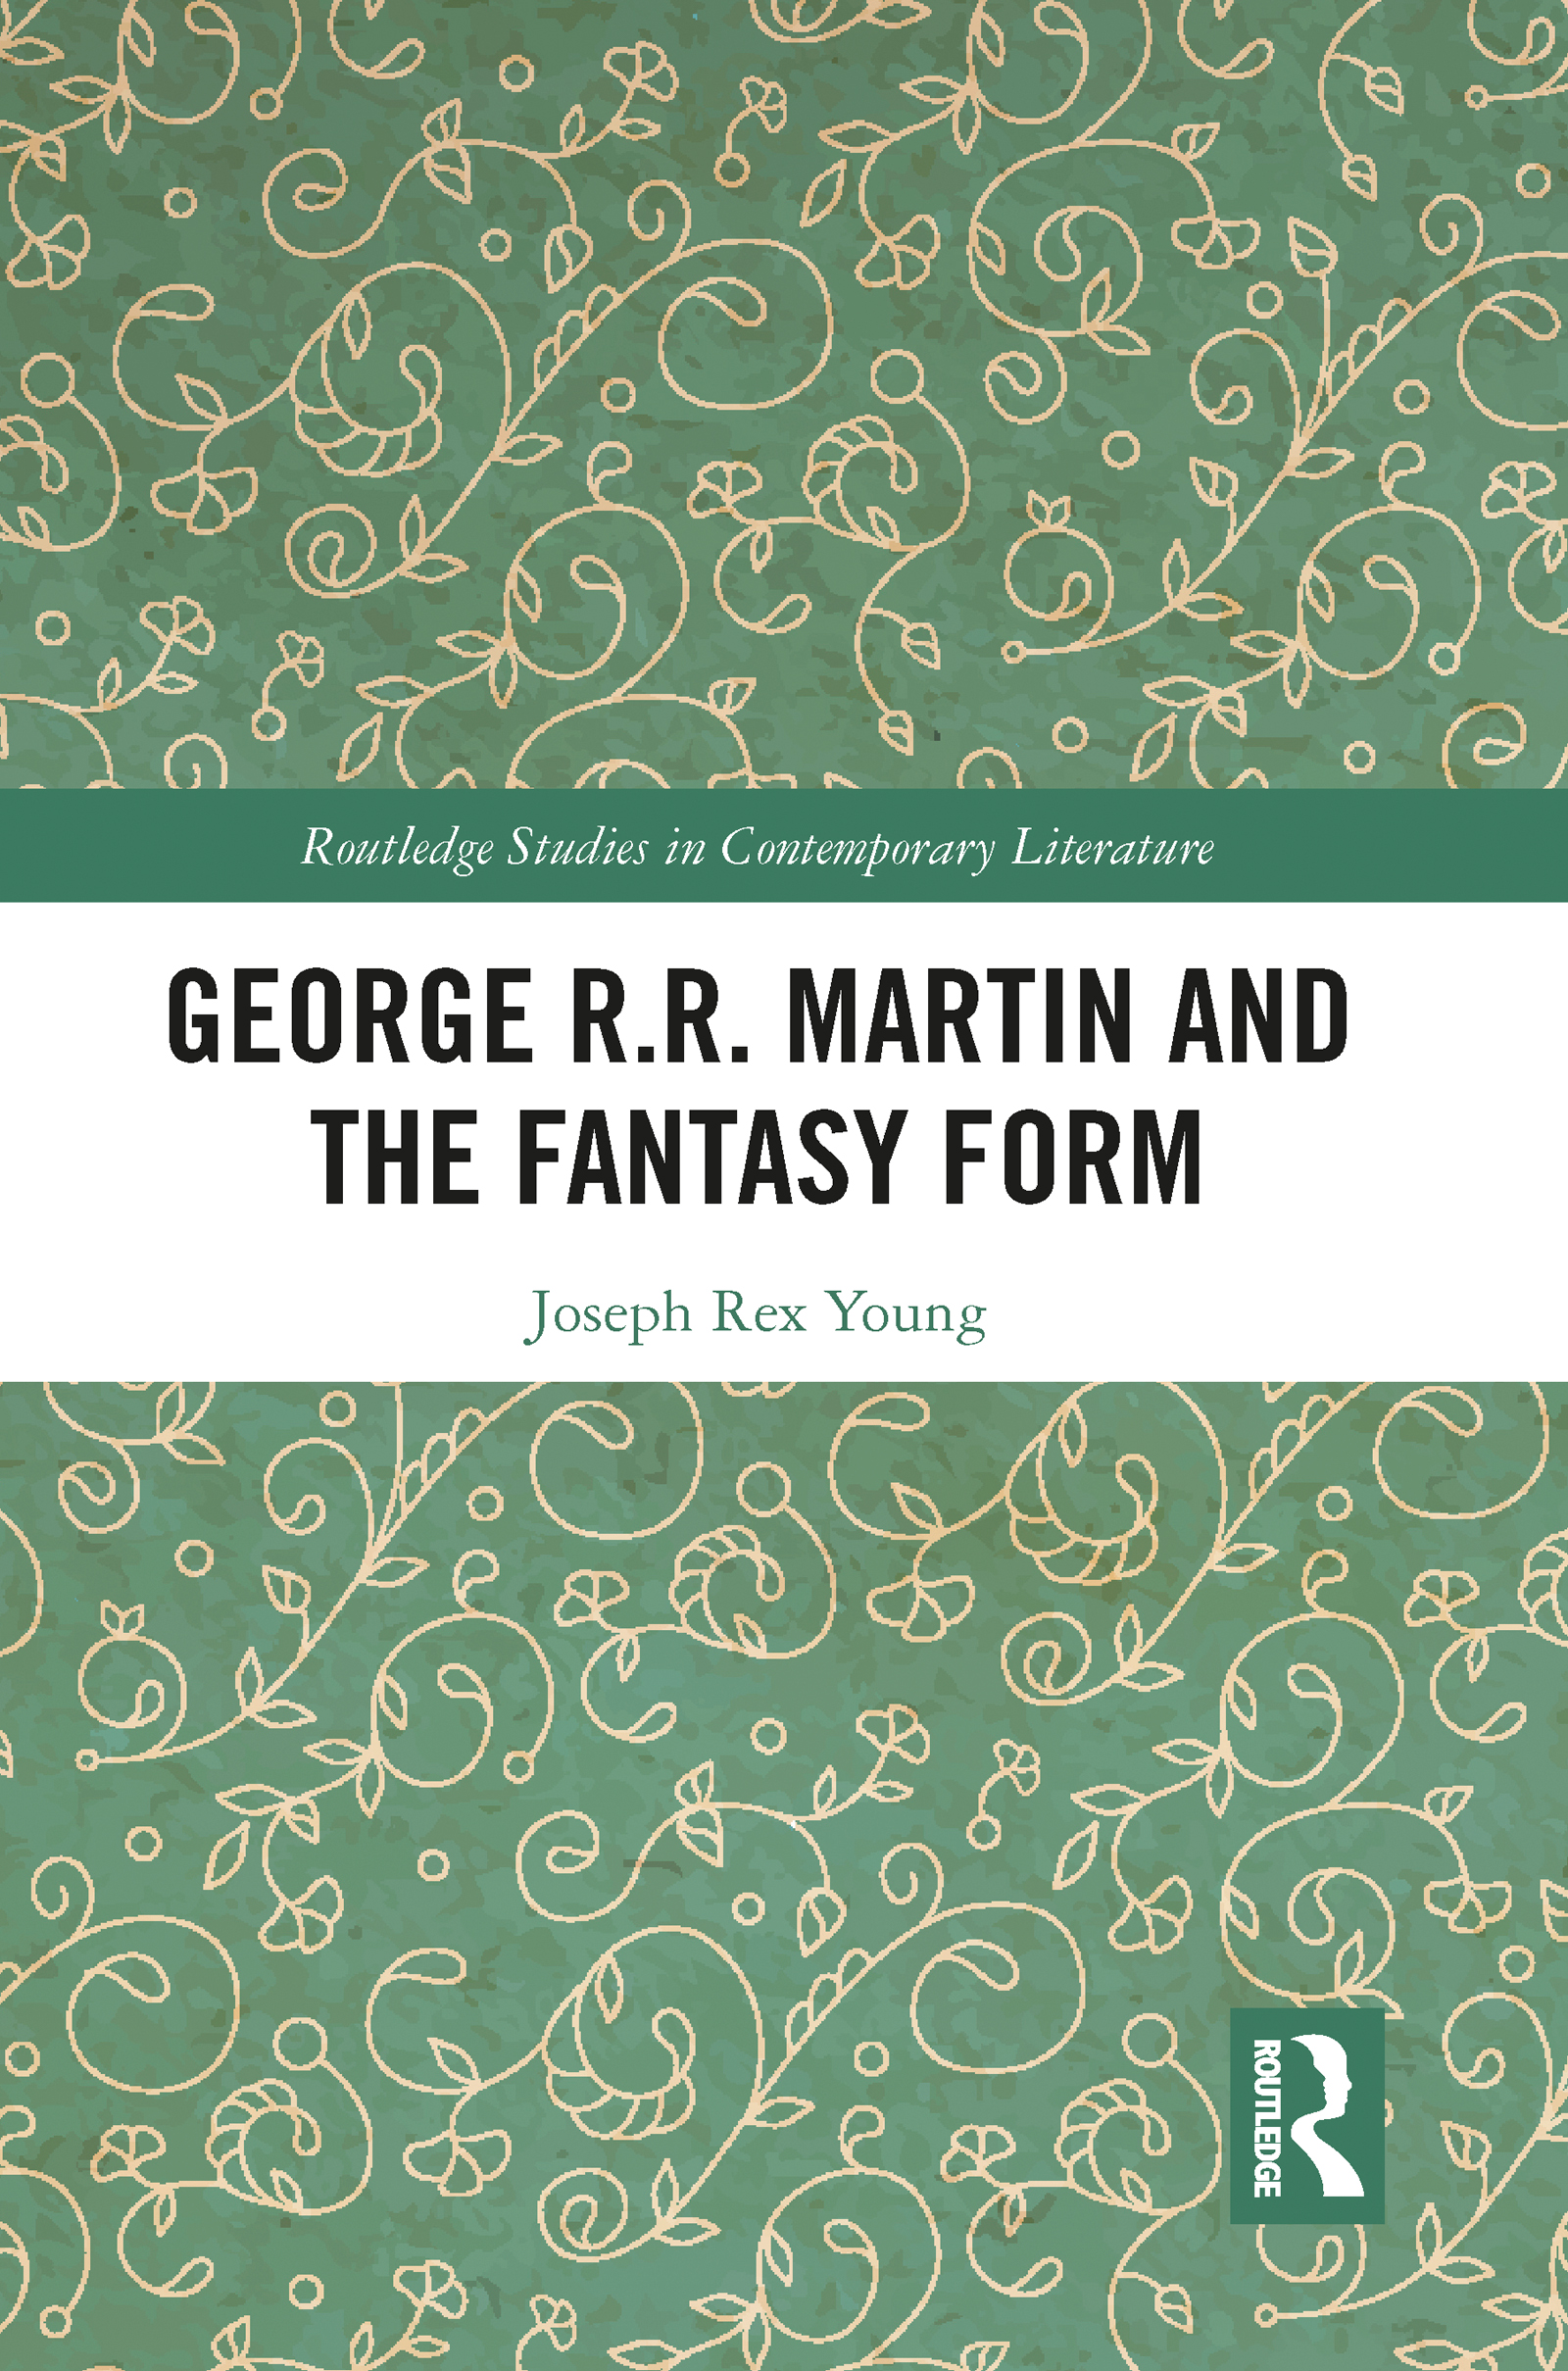 George R.R. Martin and the Fantasy Form